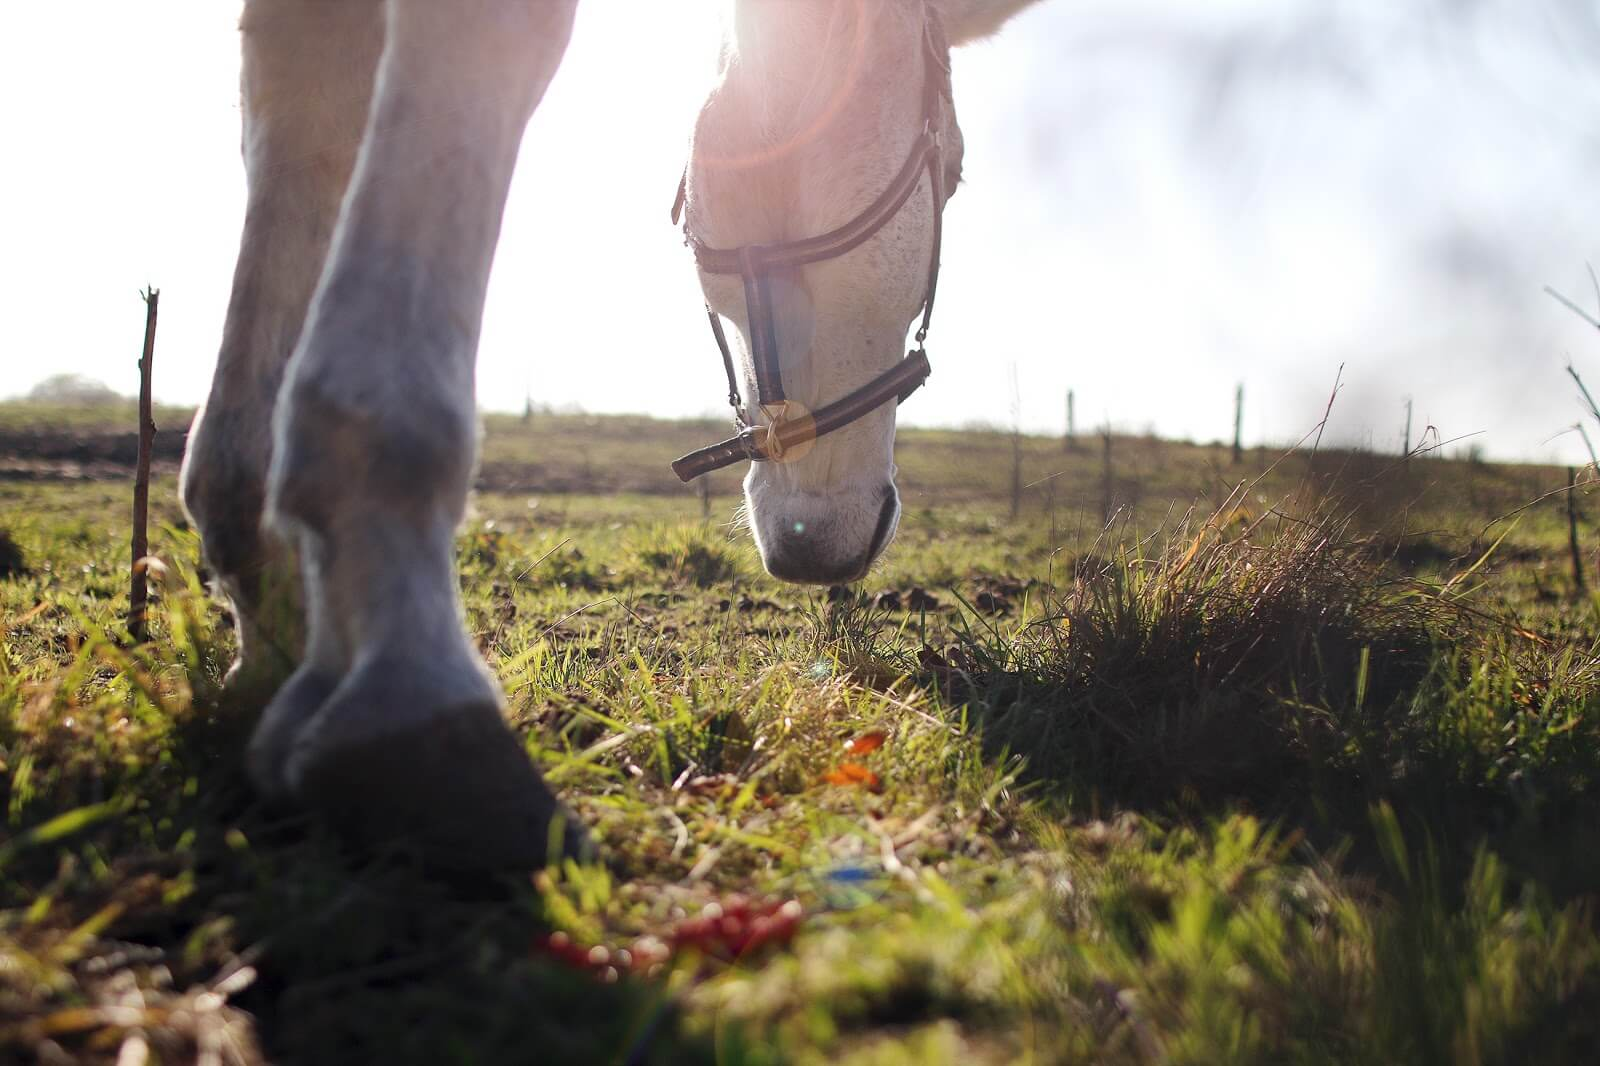 horse's hooves, feet & head while eating